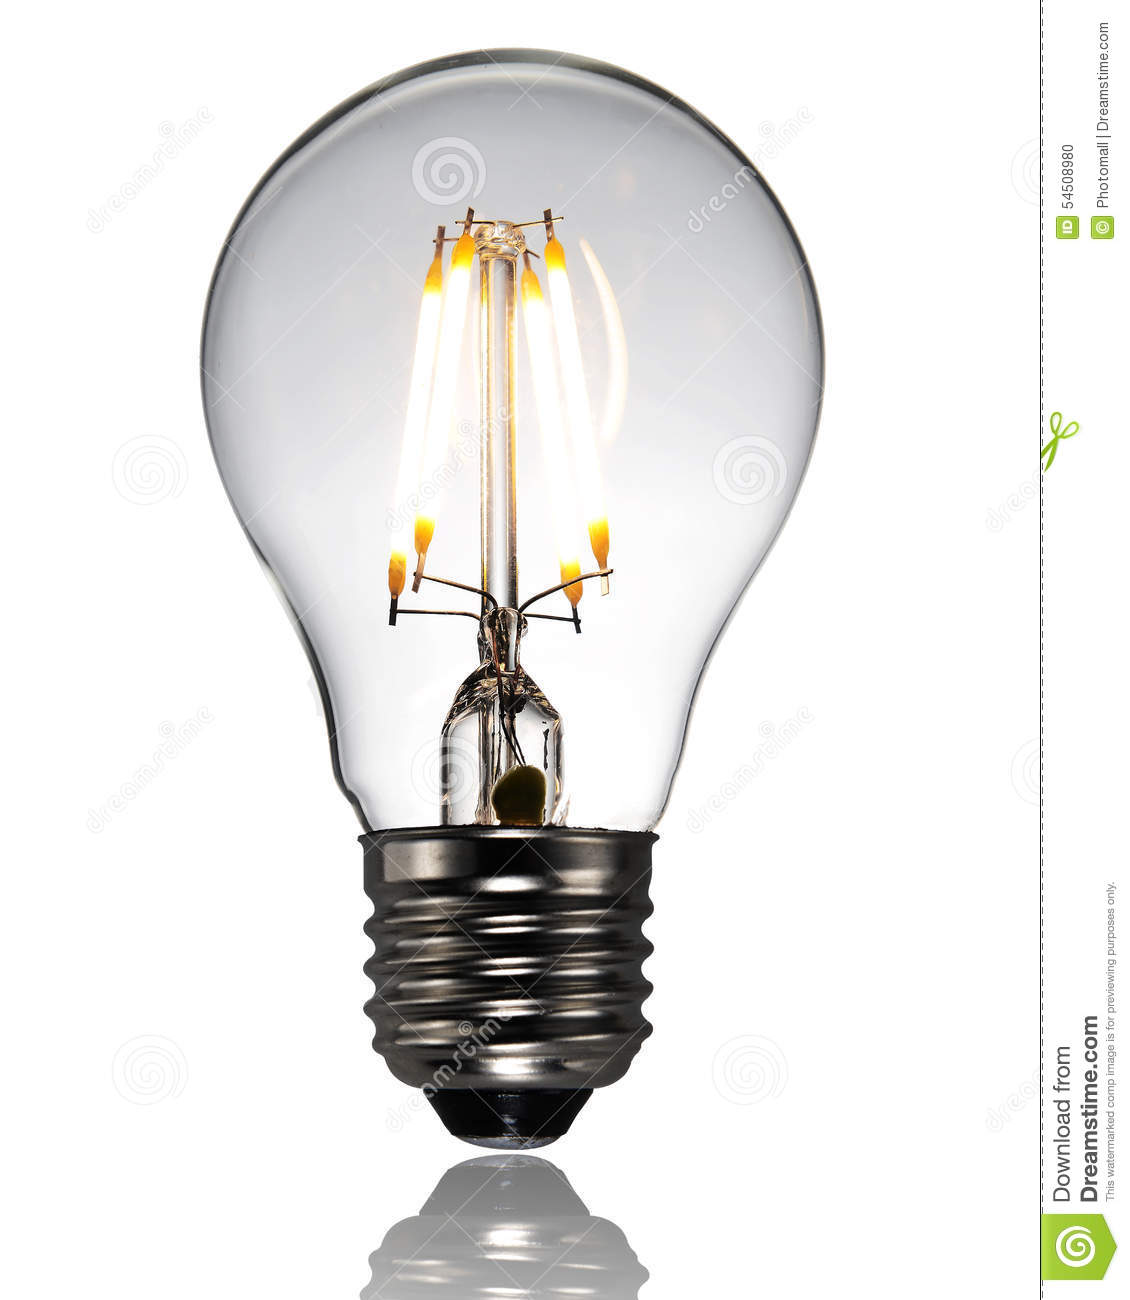 New Type Led Lamp Bulb Stock Photo Image 54508980